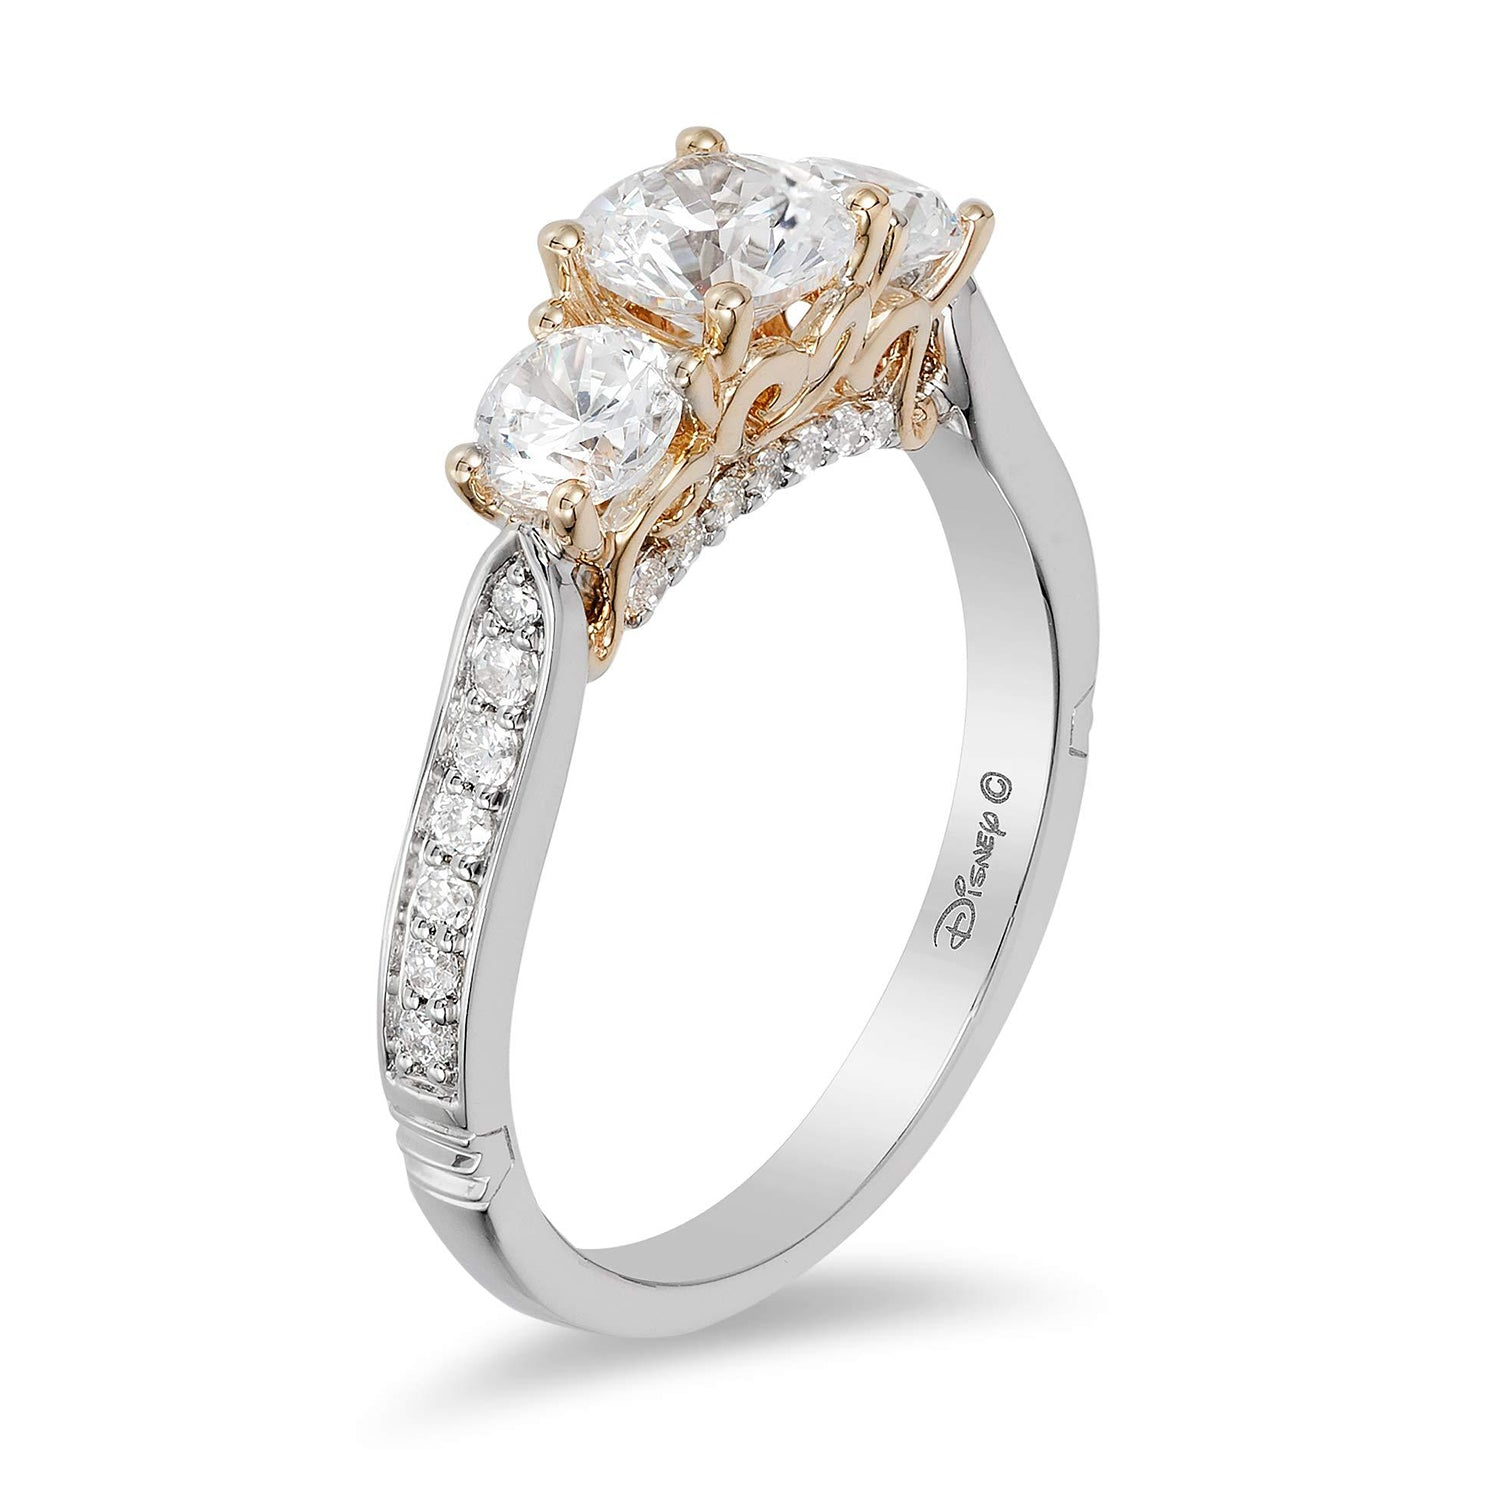 enchanted_disney-majestic-princess_bridal_ring-14k_white_and_yellow_gold_1/2CTTW_2